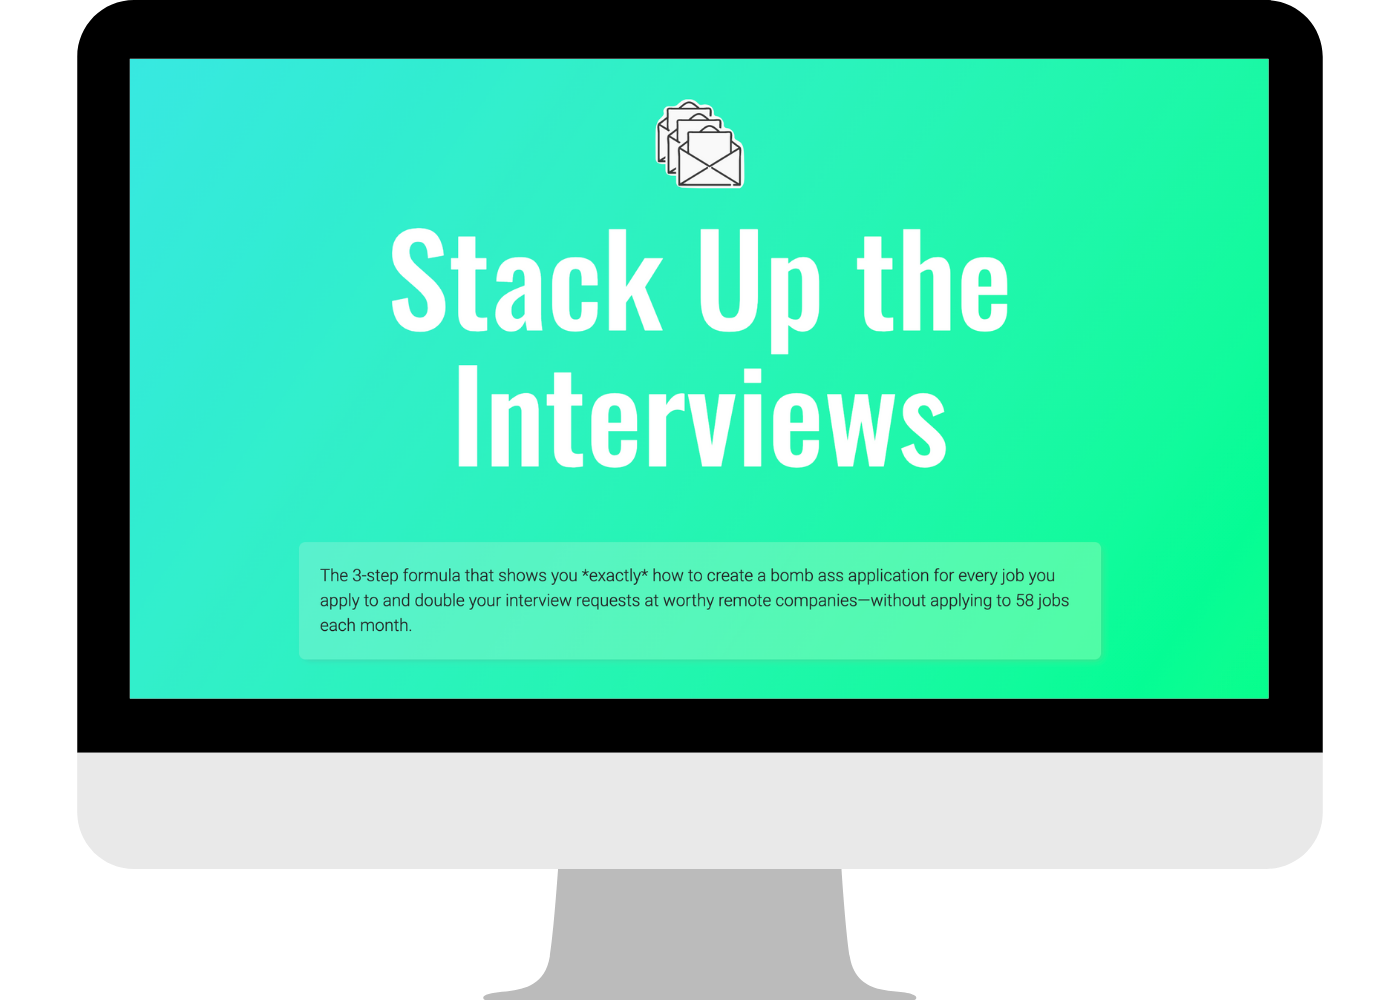 Desktop computer with Stack Up the Interviews on the screen